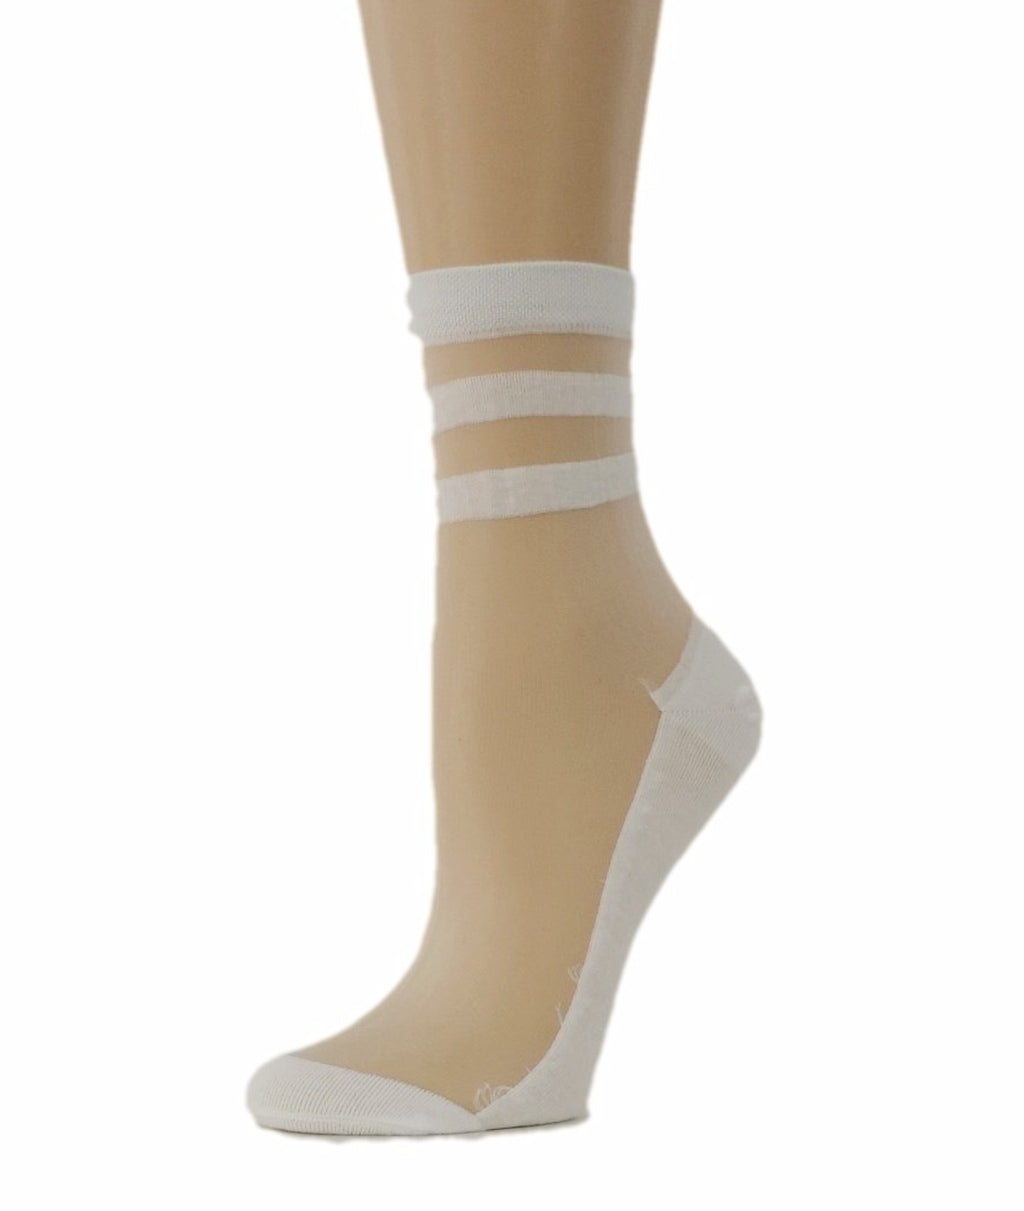 Classy White Striped Sheer Socks - Global Trendz Fashion®